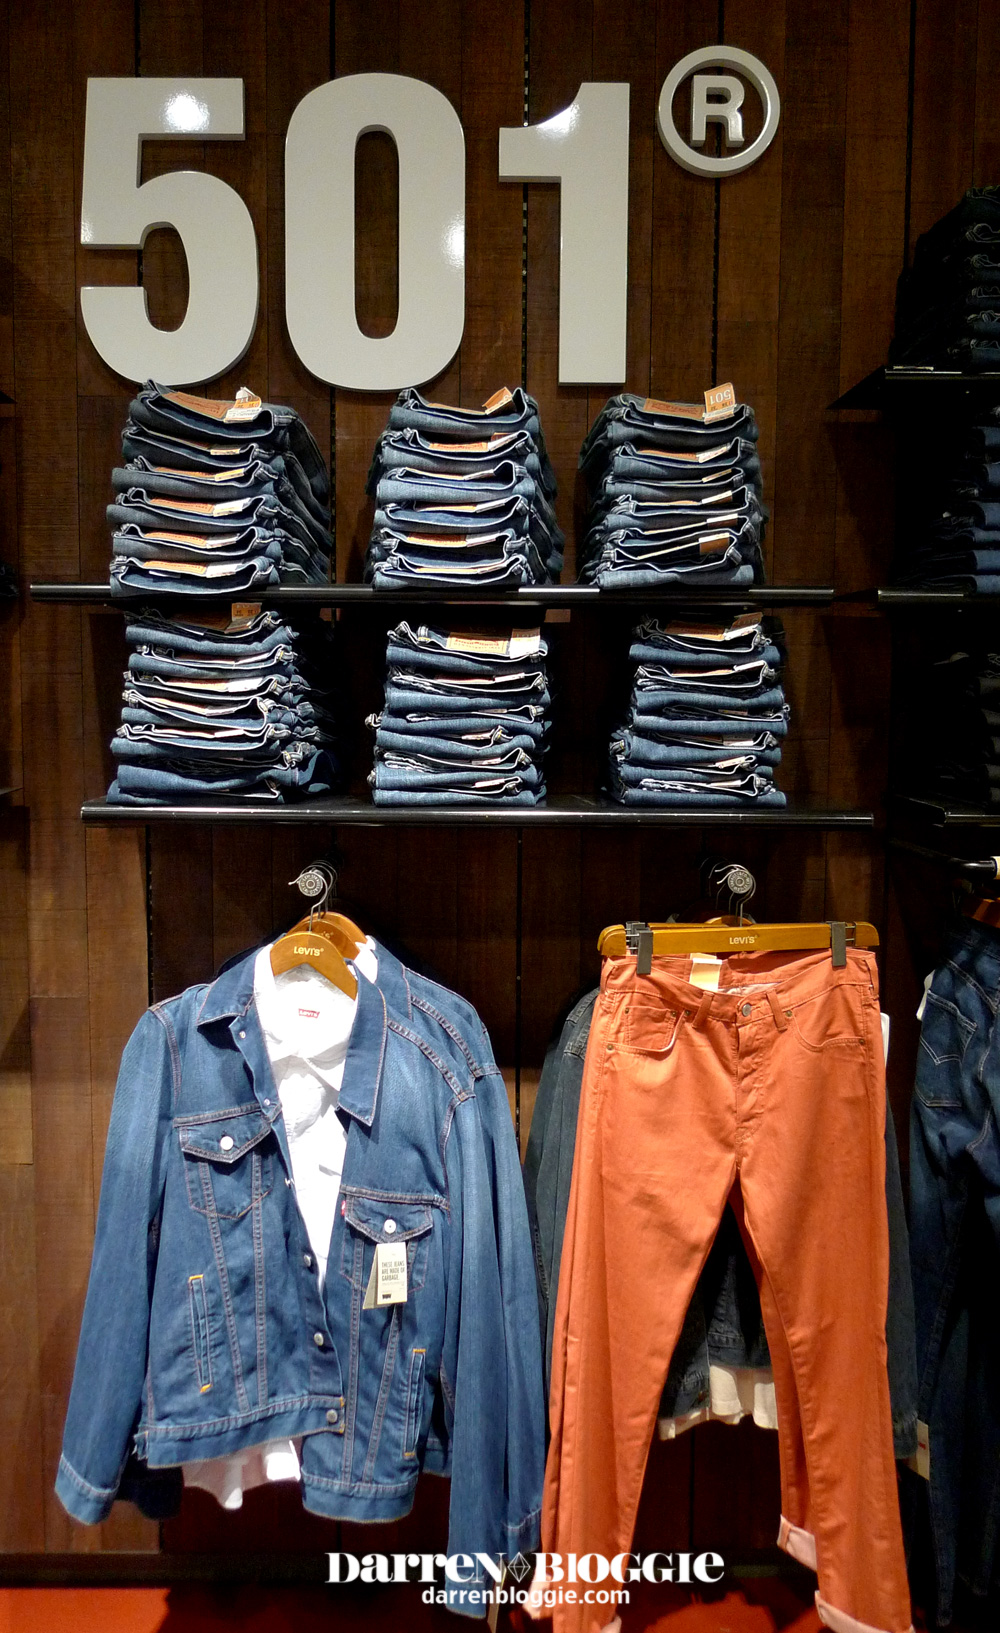 Behind the Scenes of LEVIS 501 Interpretation blog